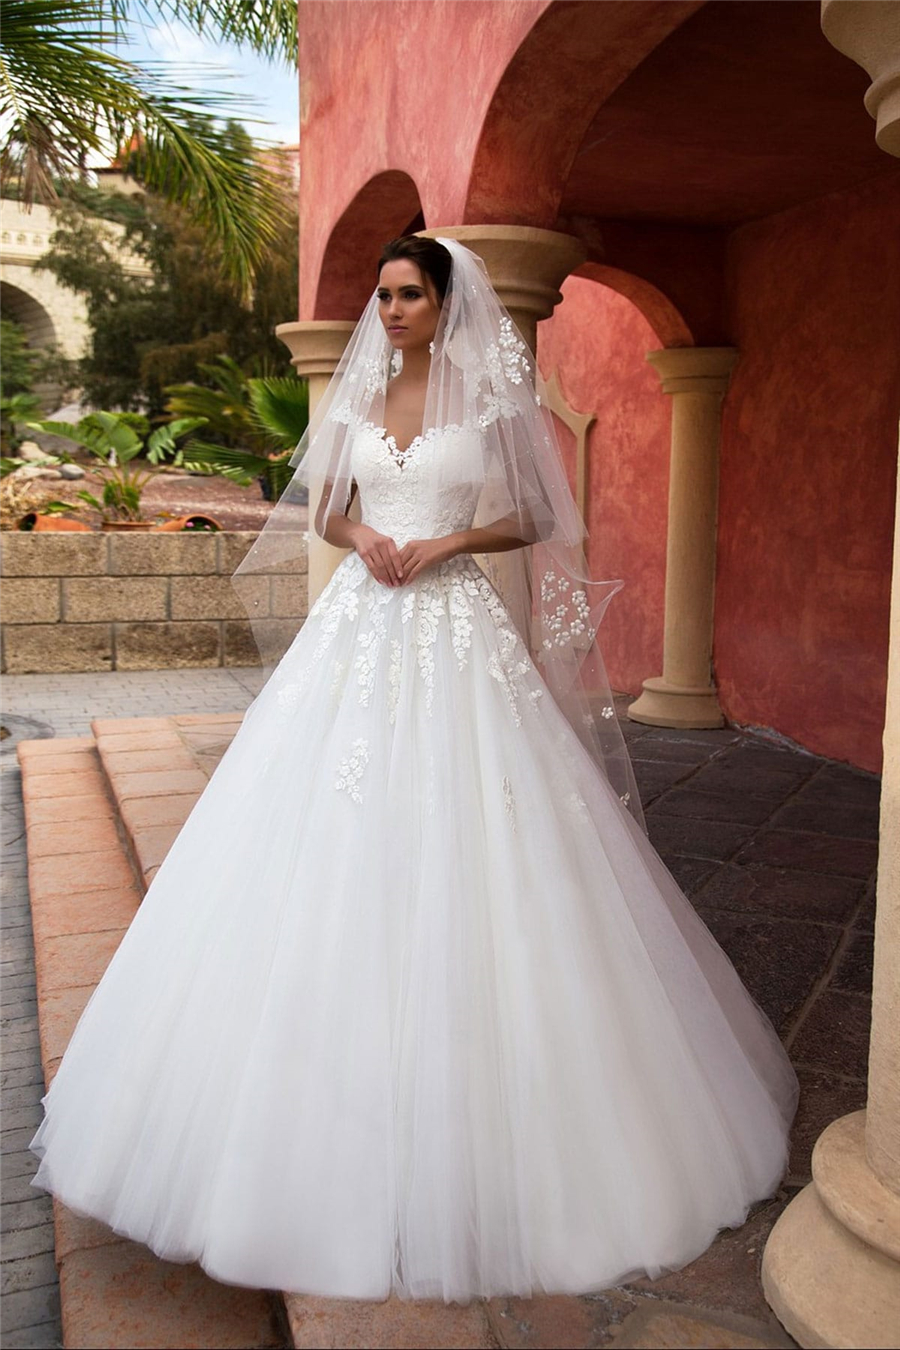 2020 Sweetheart Lace Appliques A-Line Wedding Dresses Sweep Train Long Bridal Gowns Formal Customized Online Vestidos De Mariee